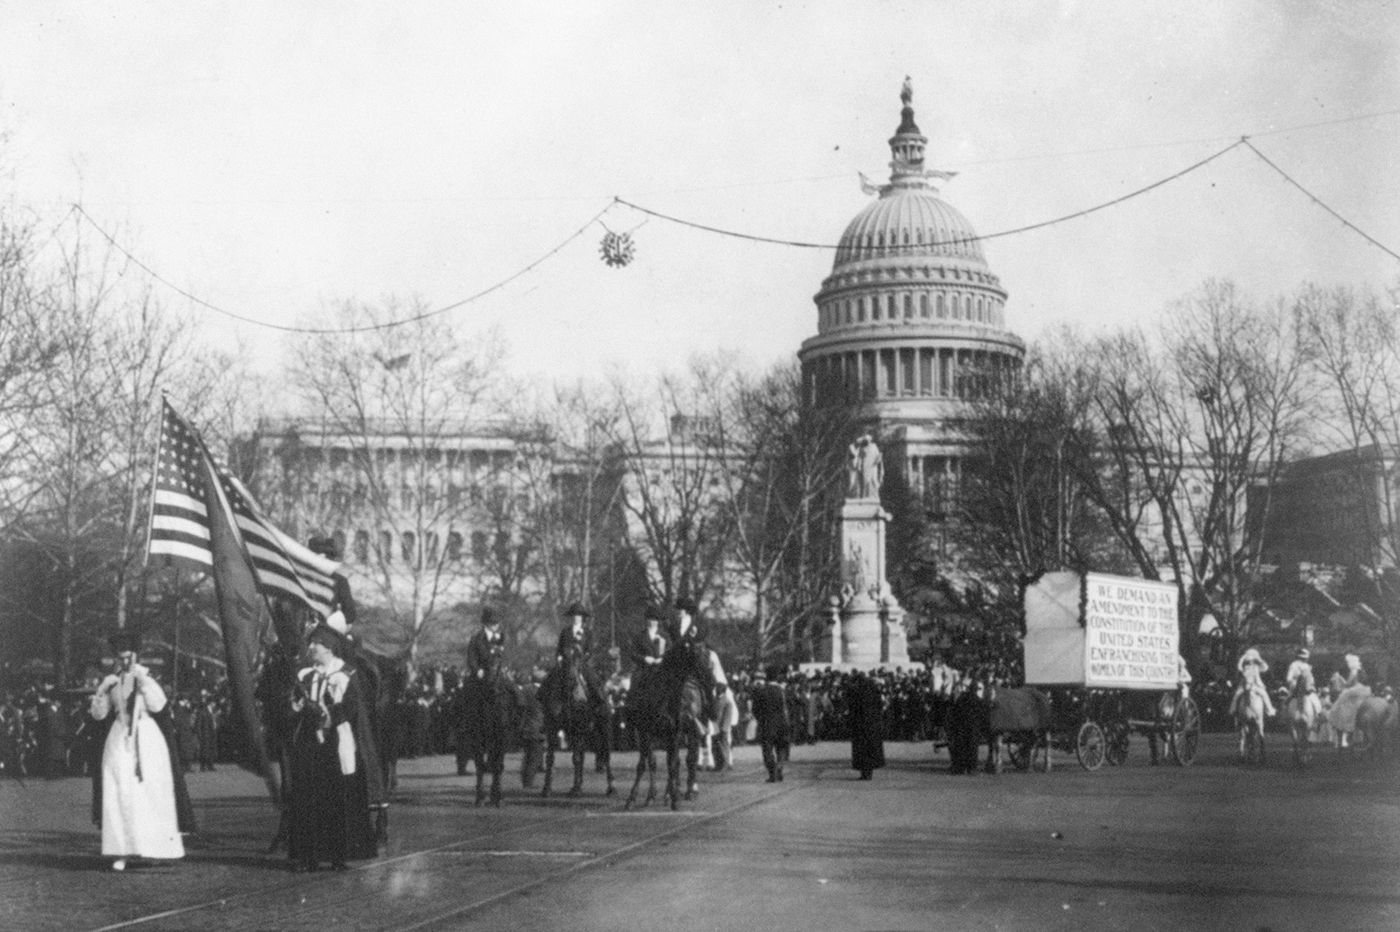 Labor rights mobilized women 100 years ago during suffrage — and now